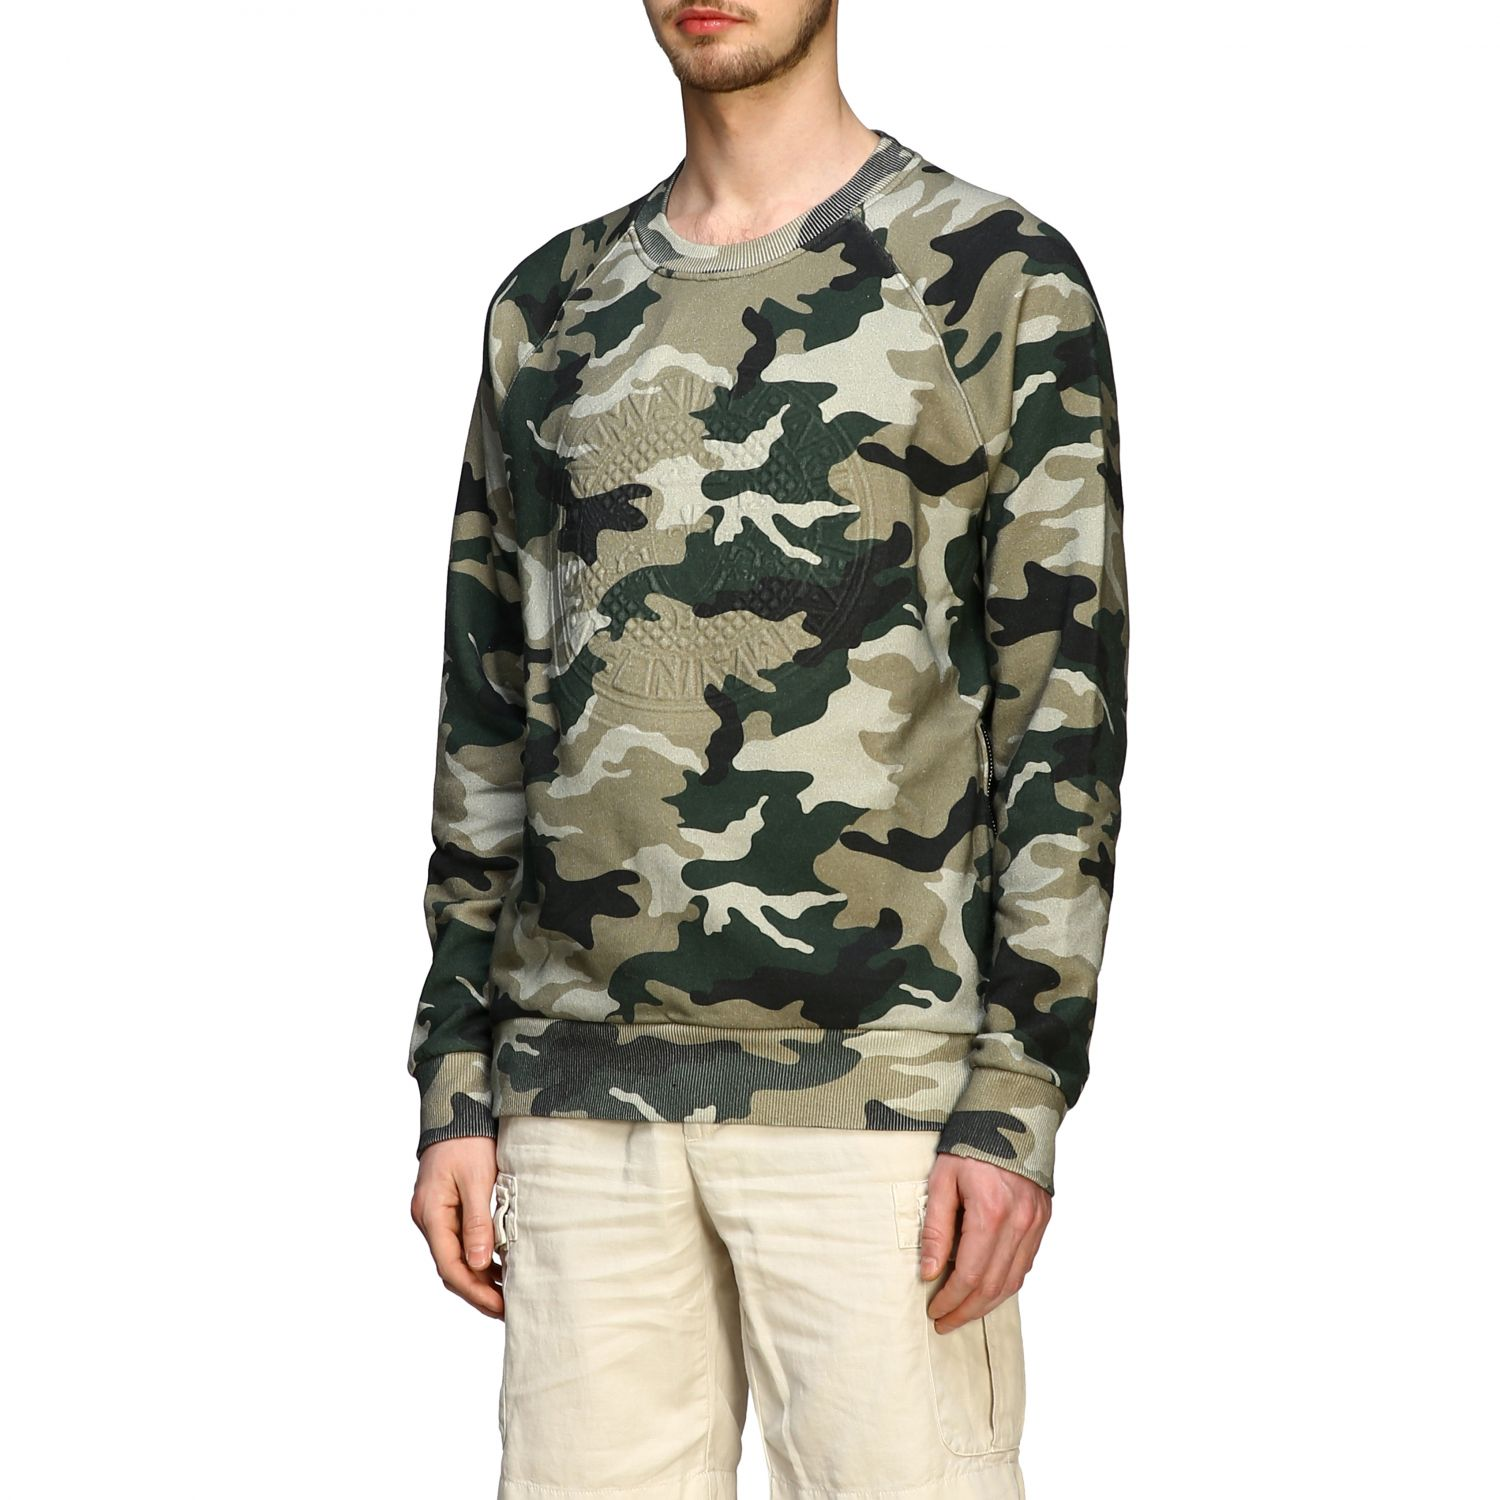 Sweatshirt Balmain: Balmain camouflage sweatshirt with flocked logo and zip military 4